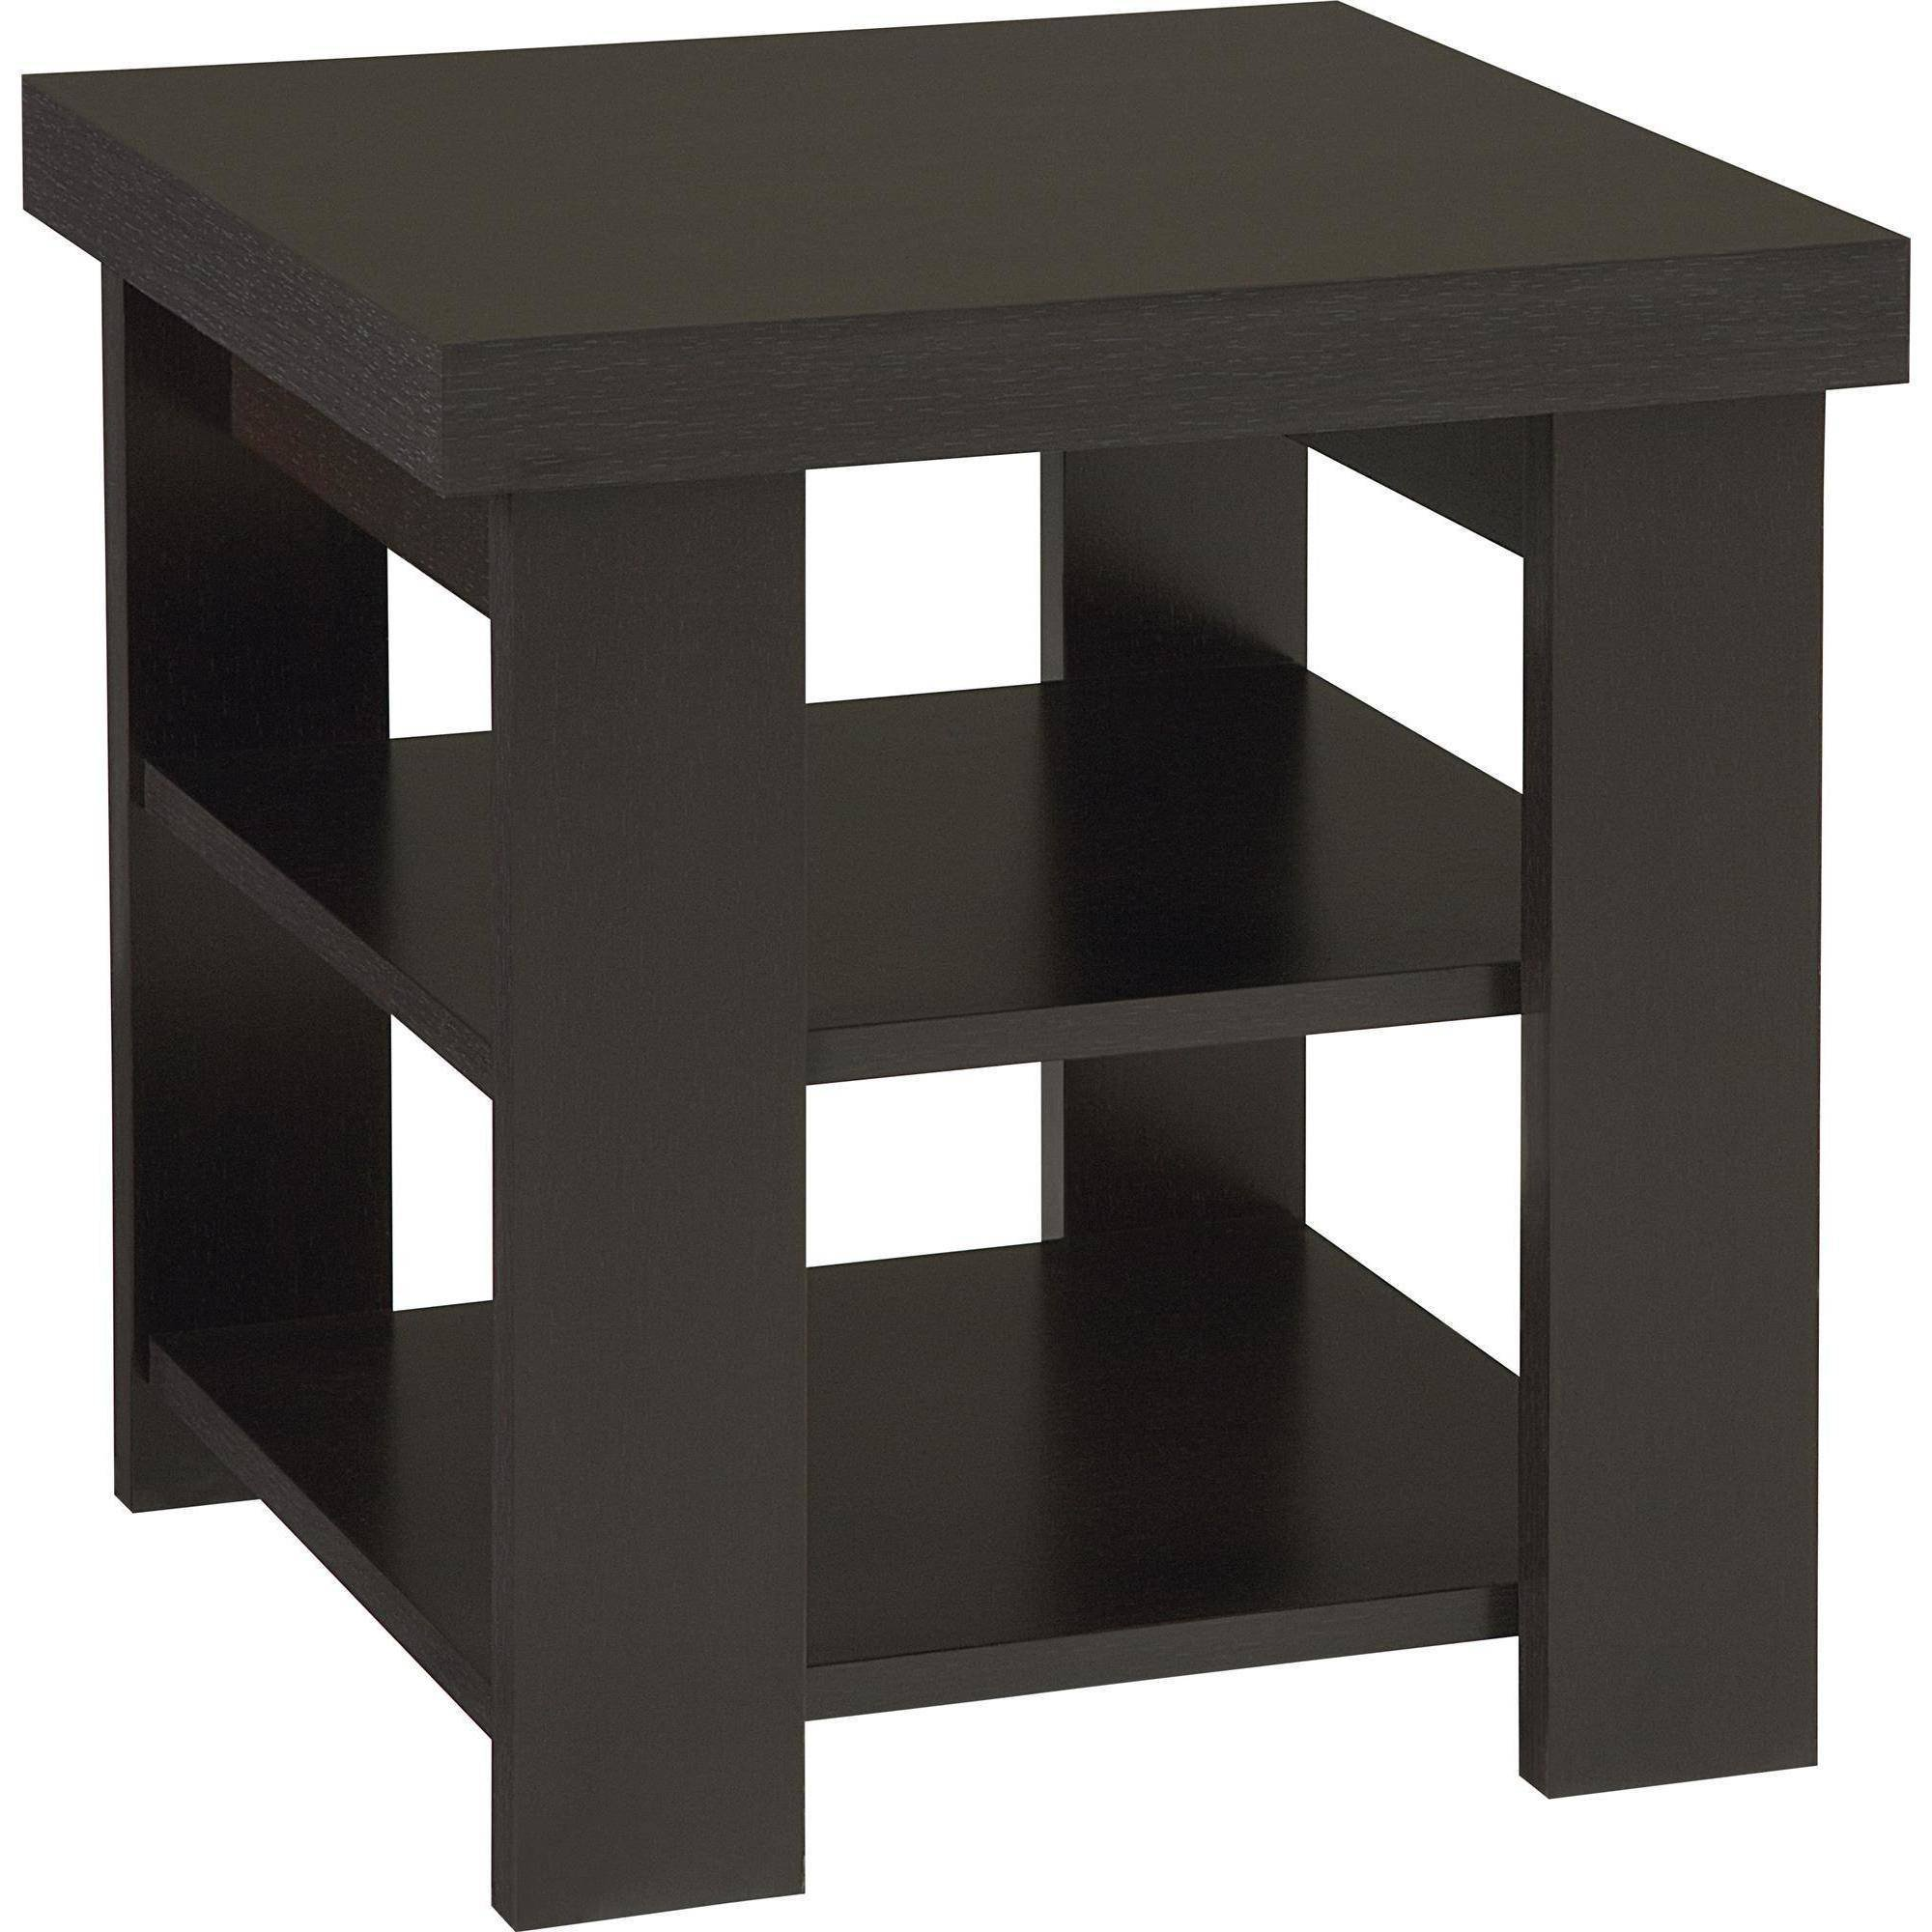 Robust Square Top Coffee Table with 2 Shelves for Storage, Divider on The Lower Shelf, Made of Laminated Particle Board and MDF, Modern Design, Assembly Required, Black + Expert Home Guide